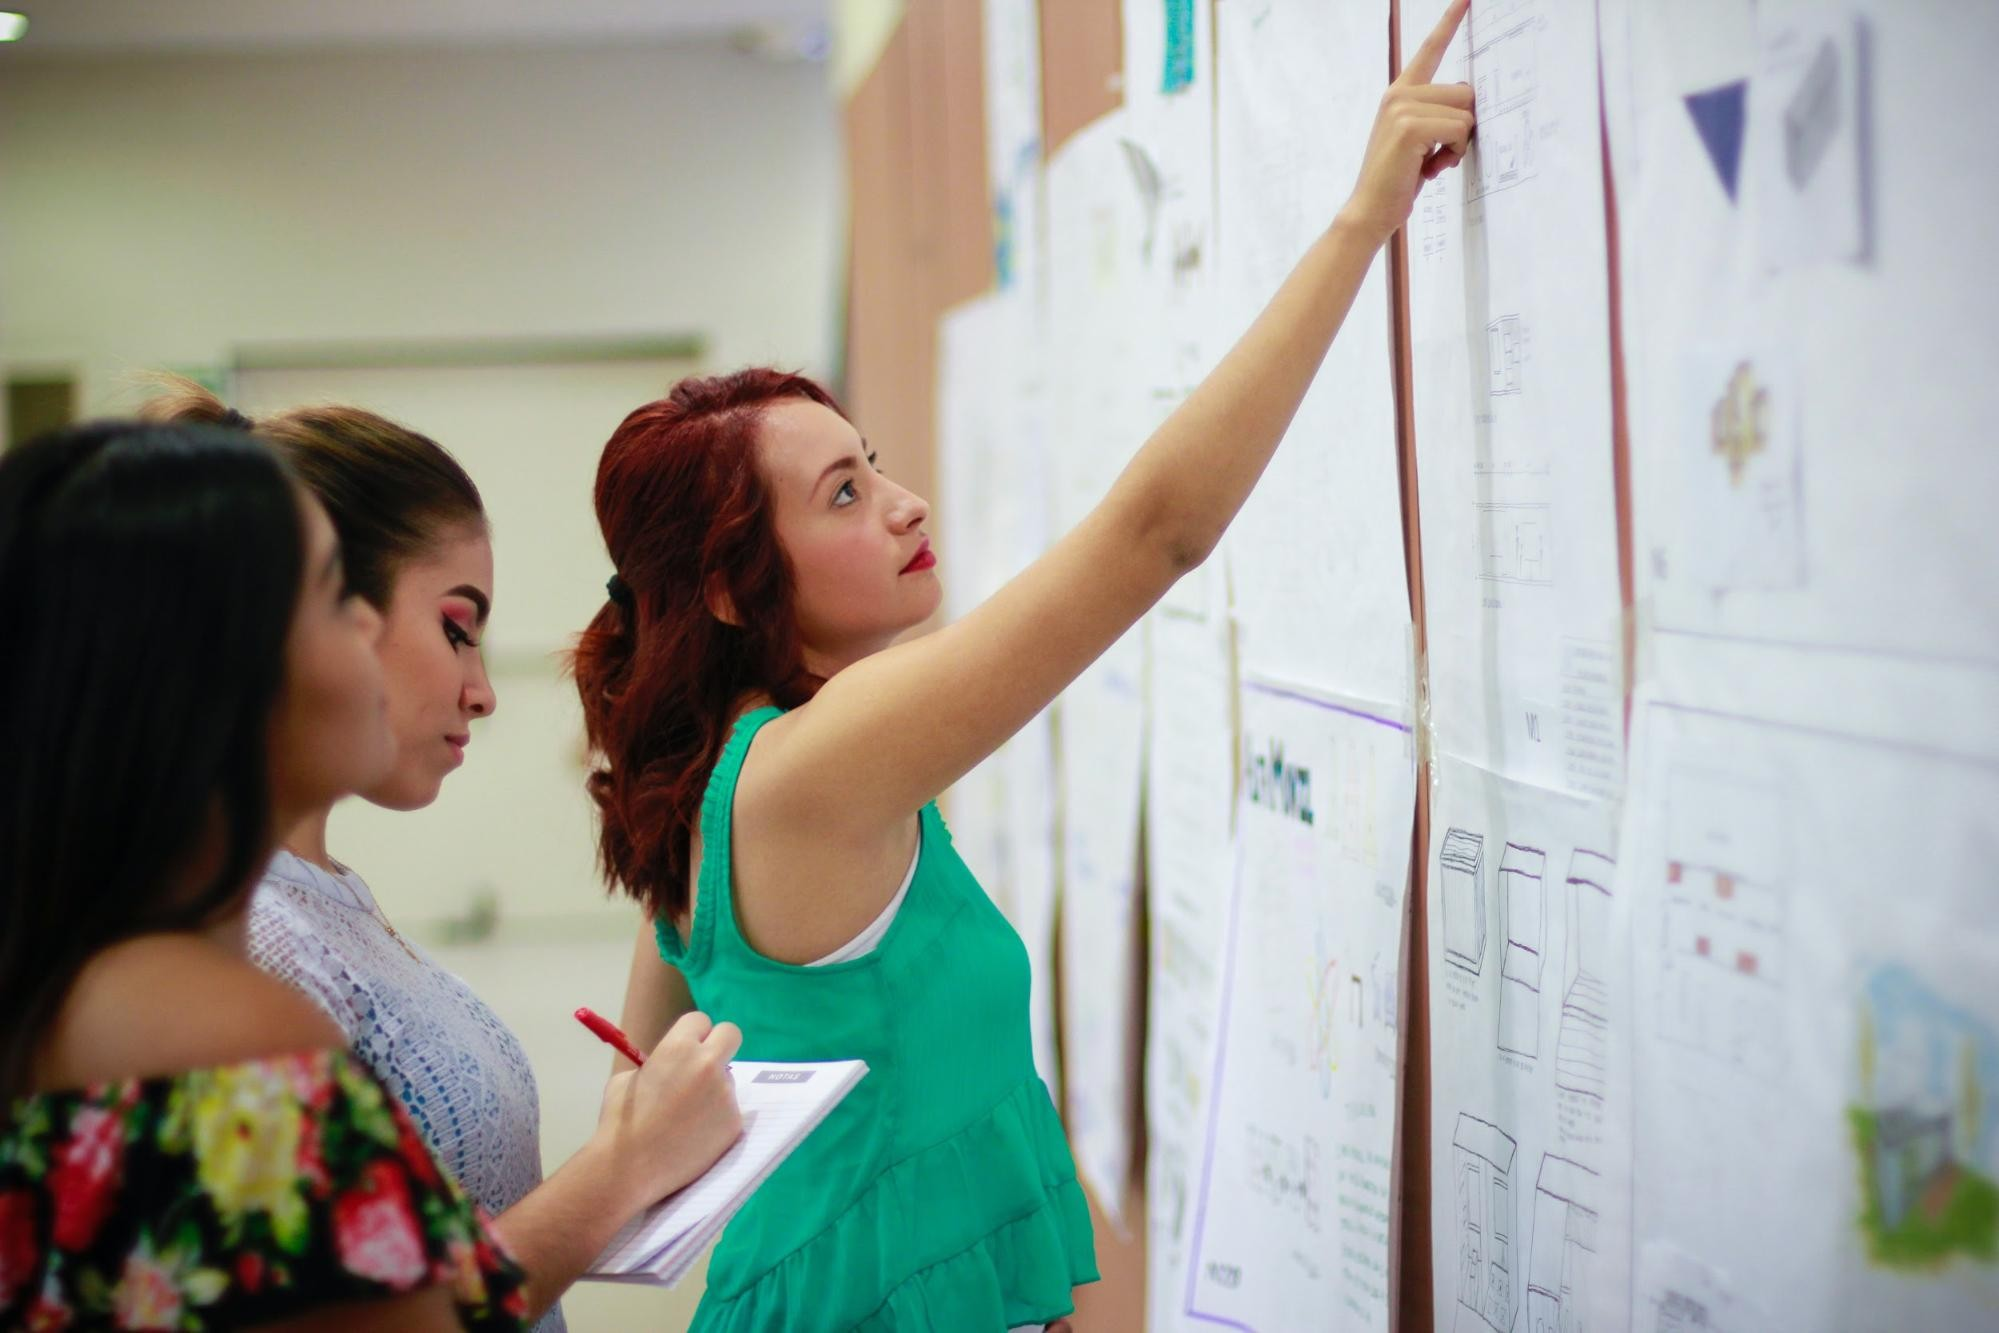 Female teacher points at charts on the wall while two other women take notes beside her.